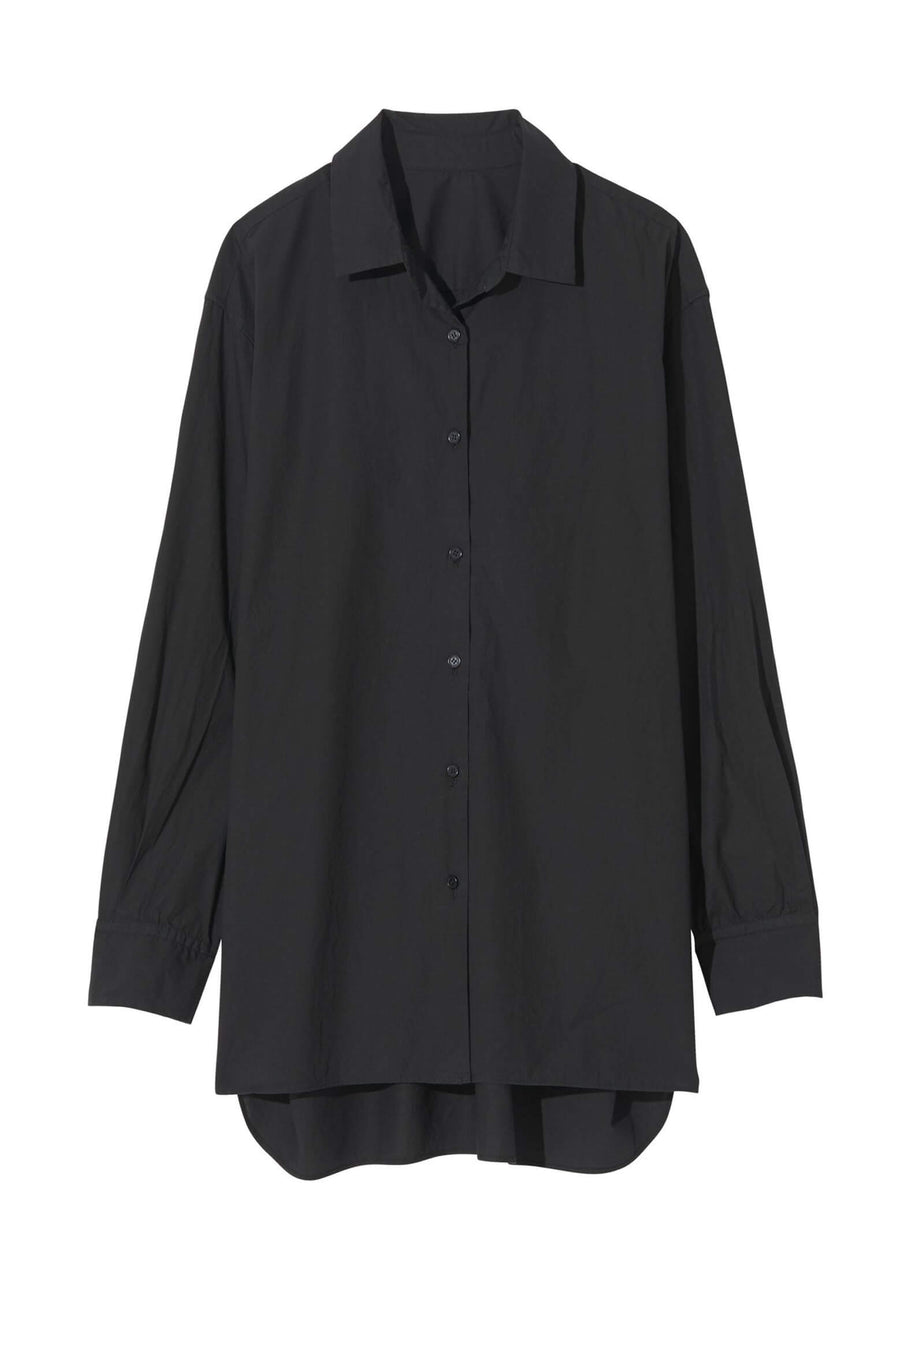 Nili Lotan Yorke Shirt in Black from The New Trend